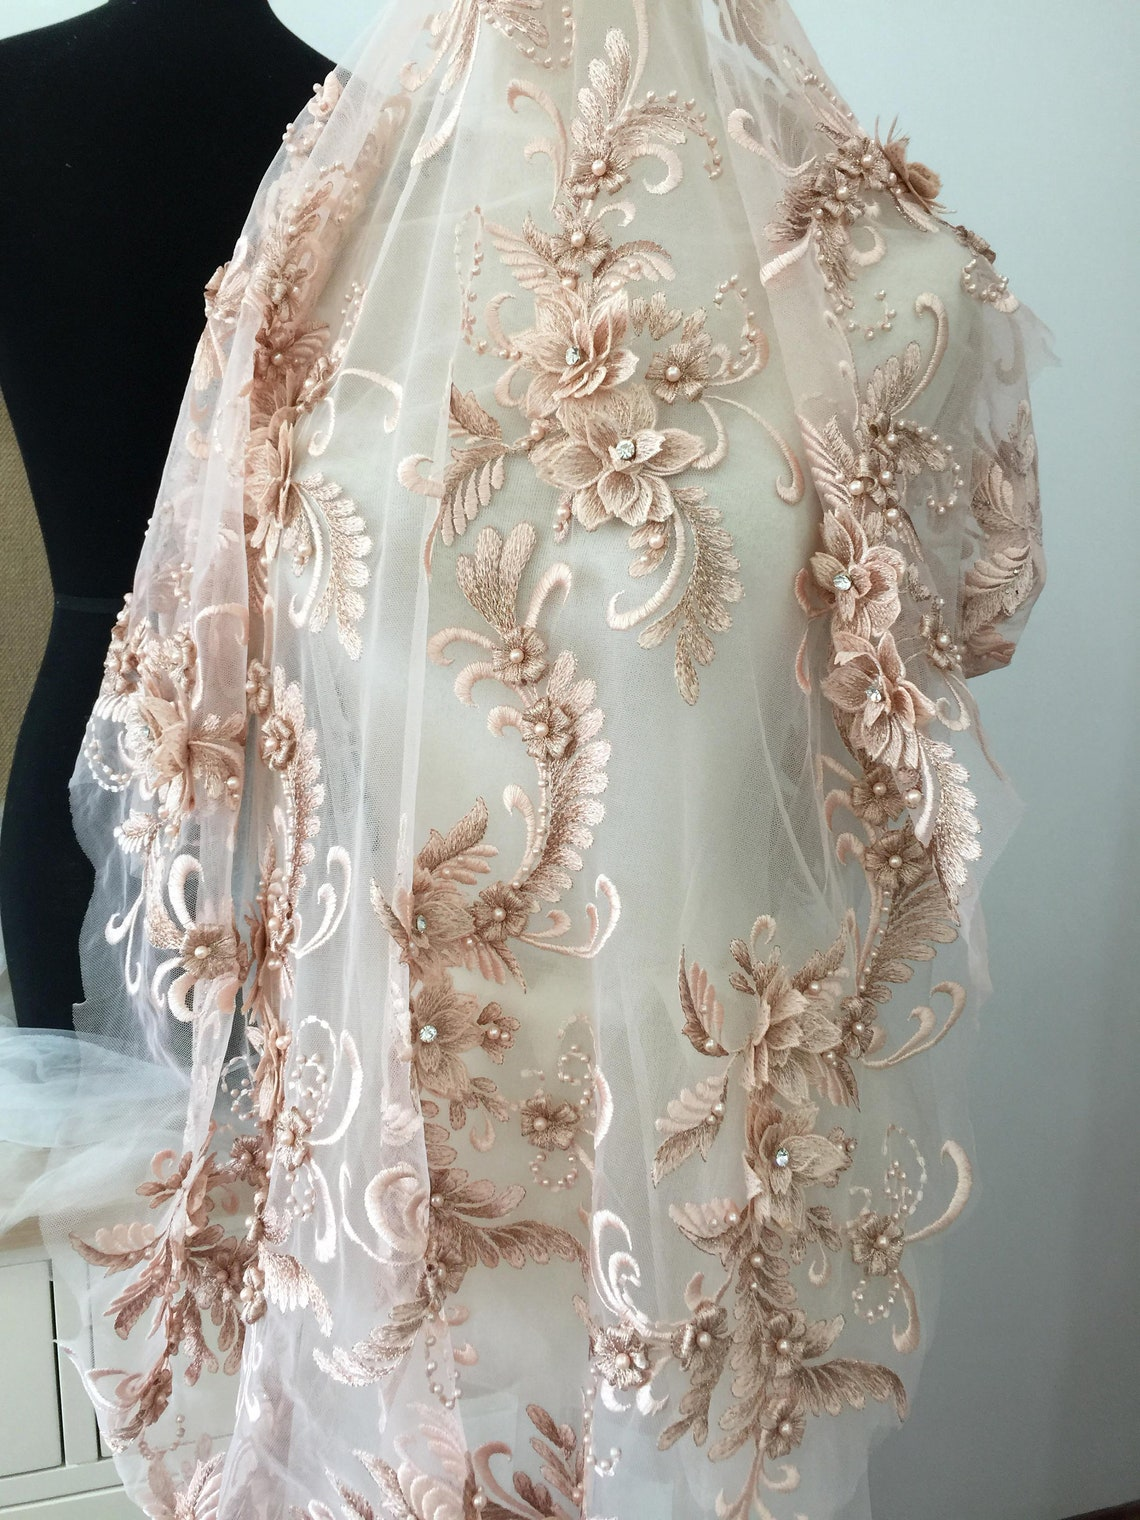 Lux 3D Rhinestone Beaded Blossom Floral Embroidery Lace Fabric